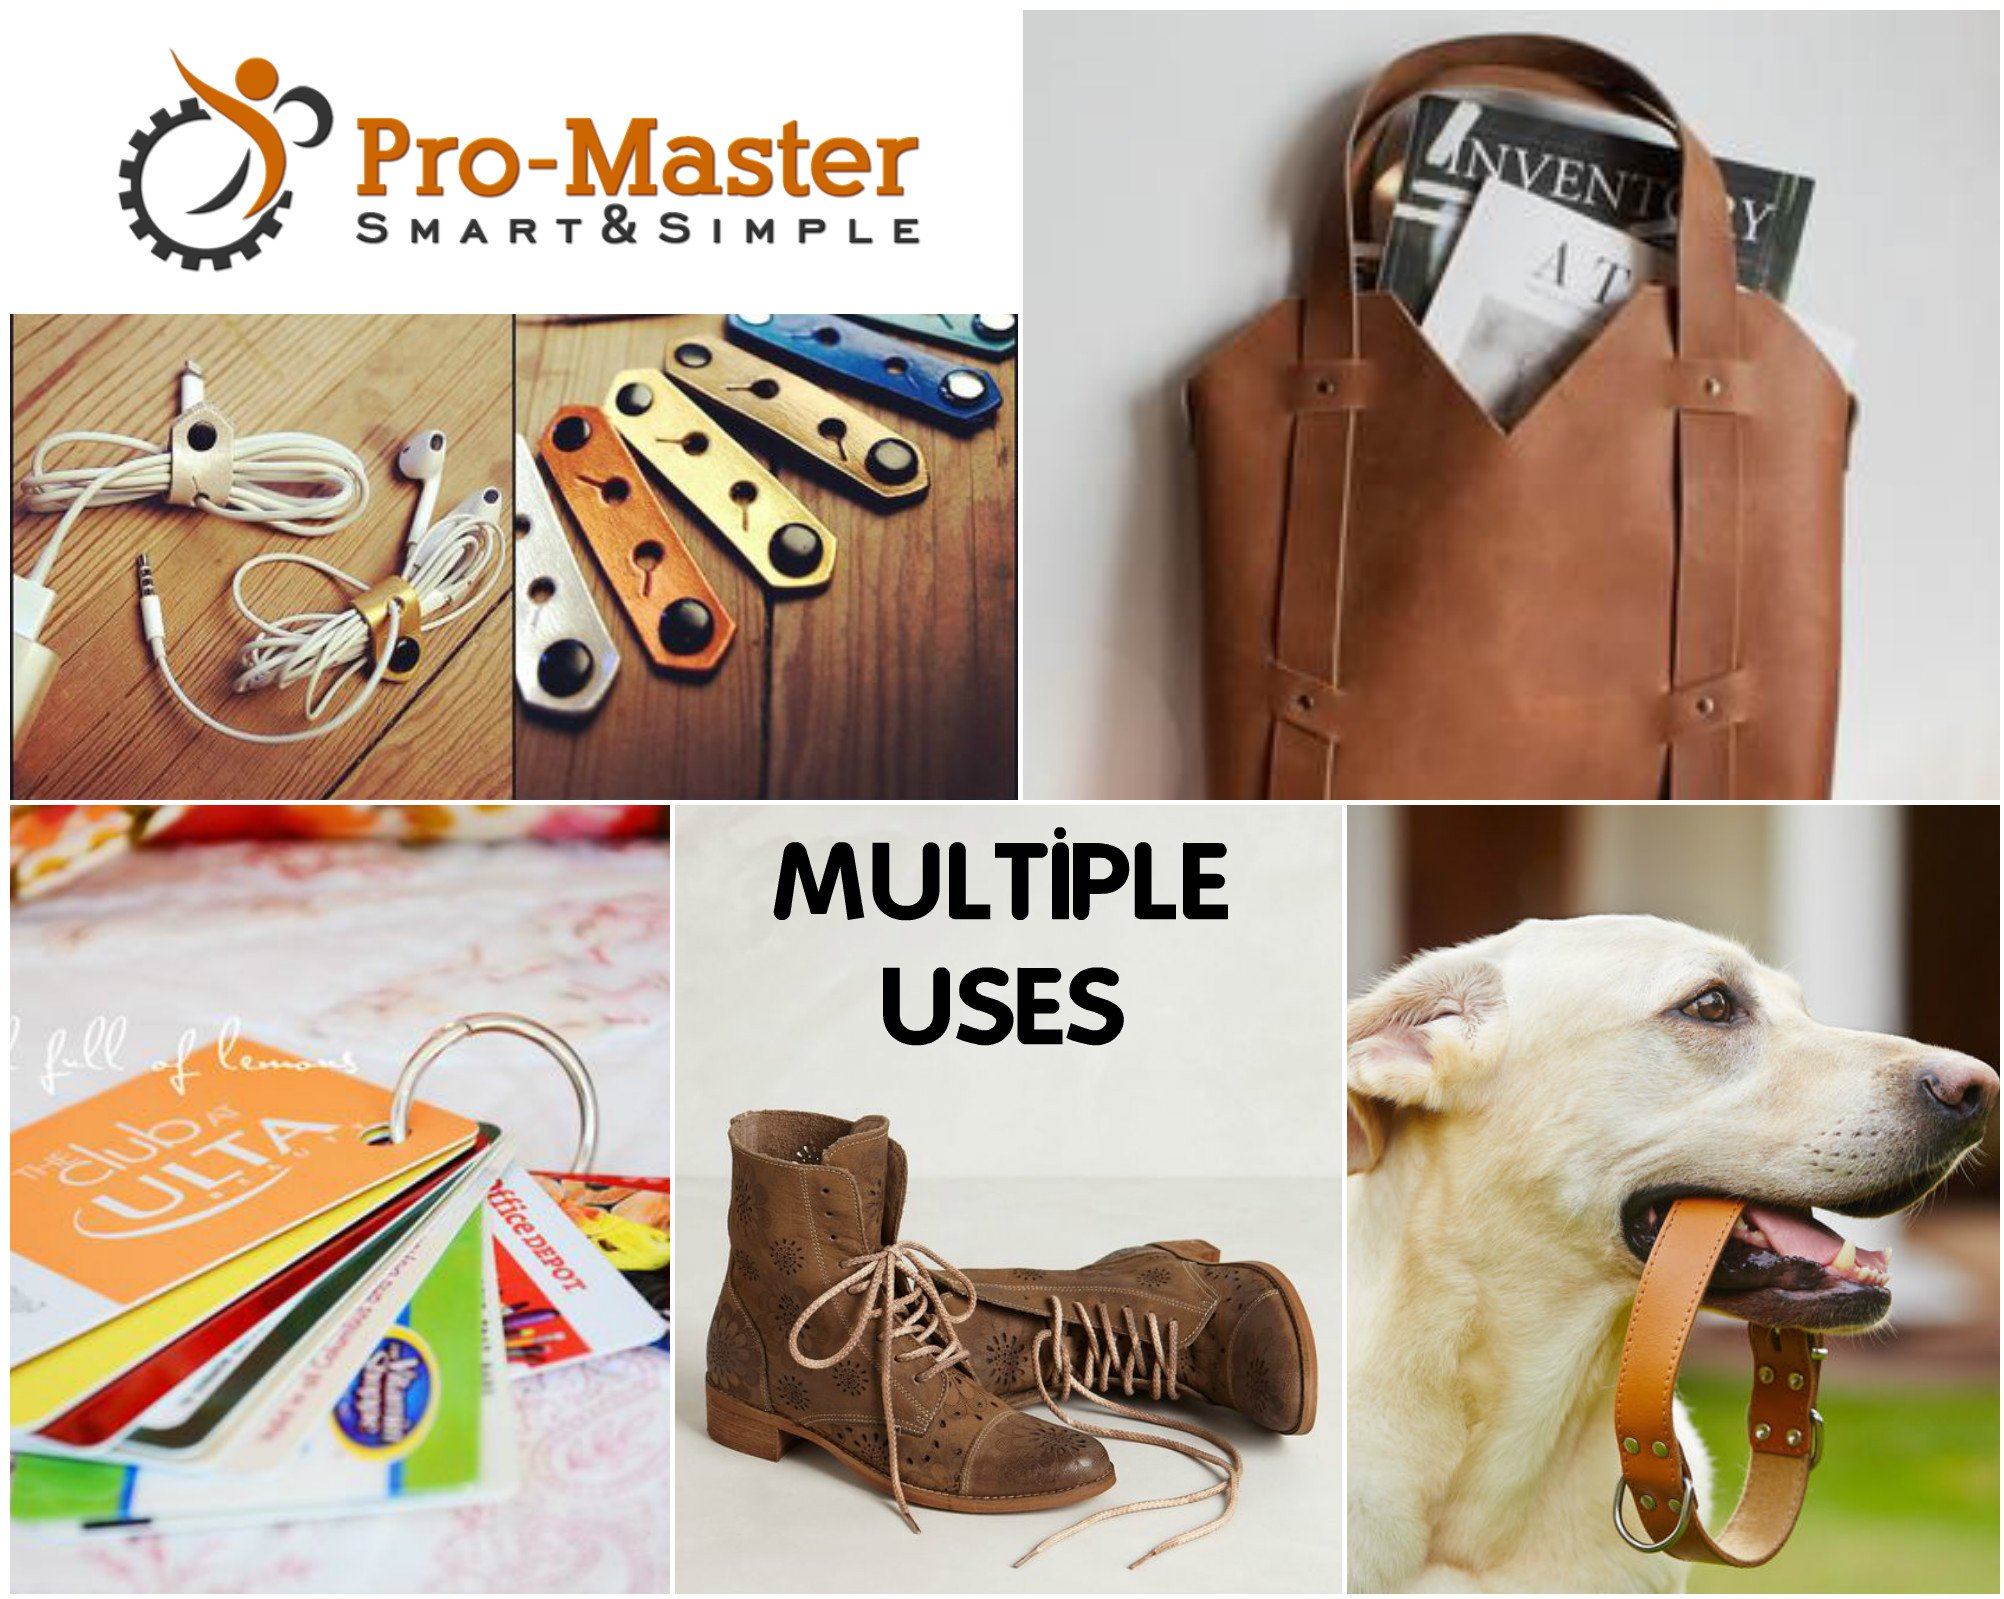 Best Leather Hole Punch Set for Belts, Watch Bands, Straps, Dog Collars, Saddles, Shoes, Fabric, DIY Home or Craft Projects. Super Heavy Duty Rotary Puncher, Multi Hole Sizes Maker Tool, 3 Yr Warranty by ProMaster (Image #8)